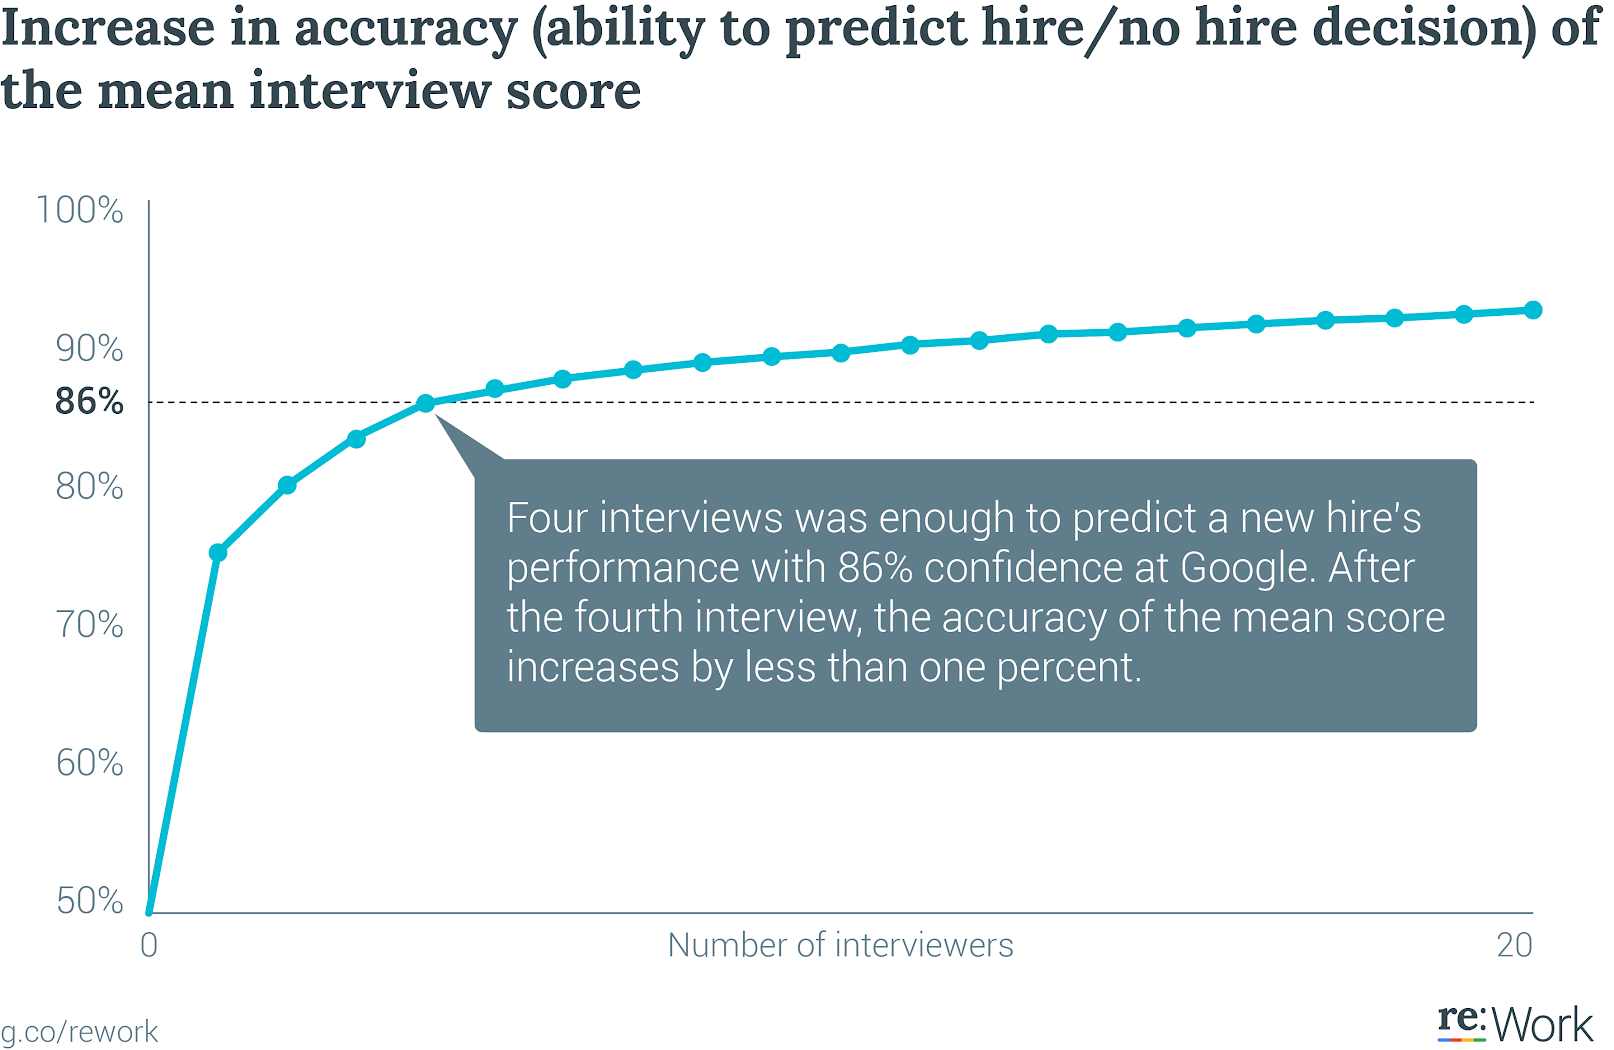 This graph shows the increase in accuracy of the mean interview score as the number of interviewers grows. Four interviews was enough to predict a new hire's performance at Google with 86% confidence. After the fourth interview, the accuracy of the mean score increases by less than one percent.